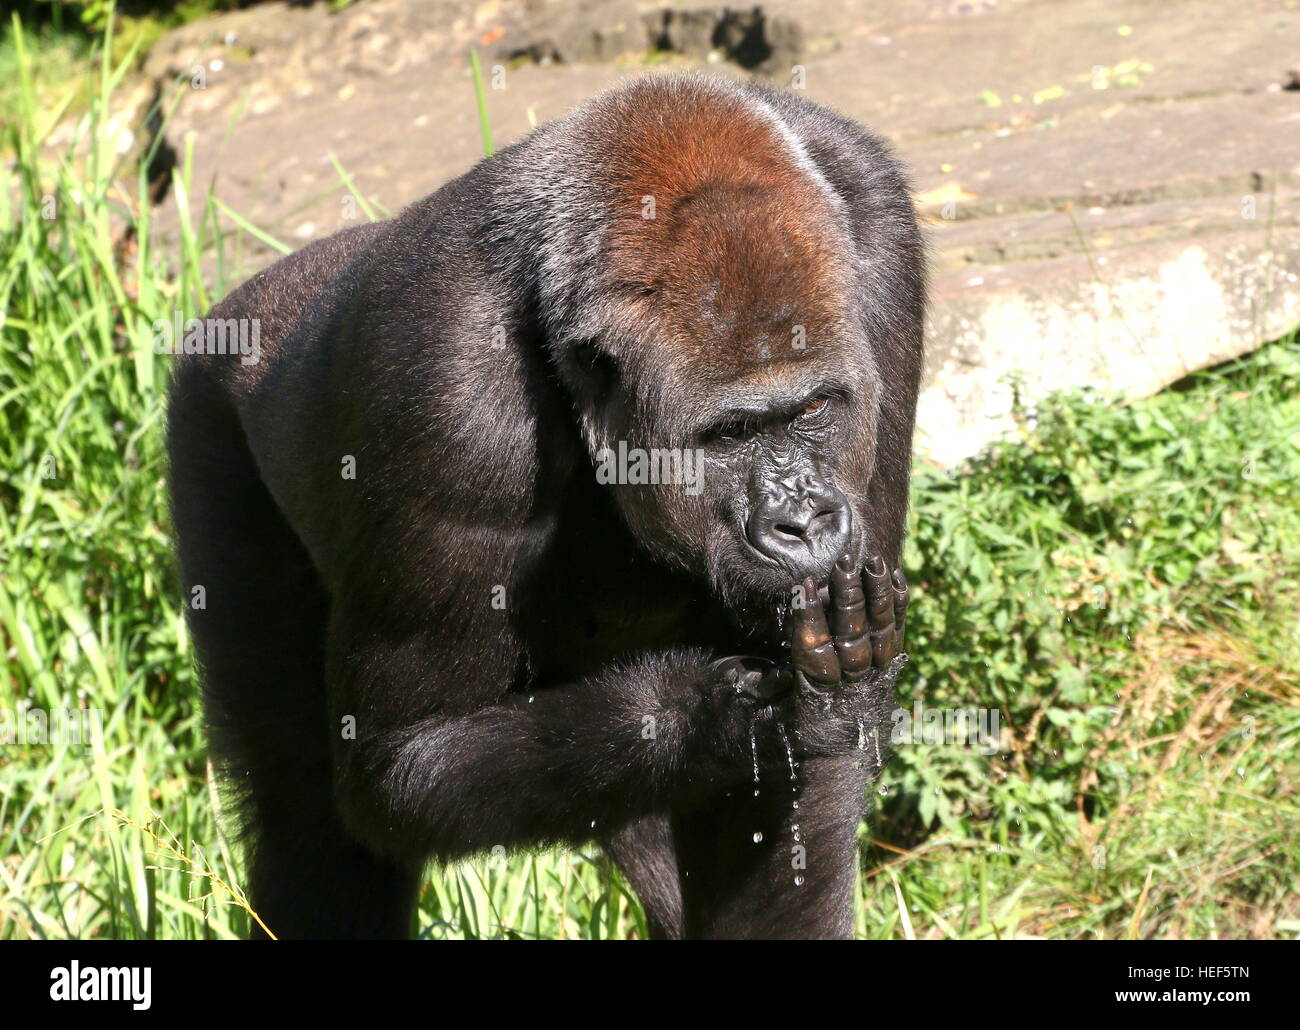 Close-up of a  male Western lowland gorilla drinking water, cupped in his hand - Stock Image